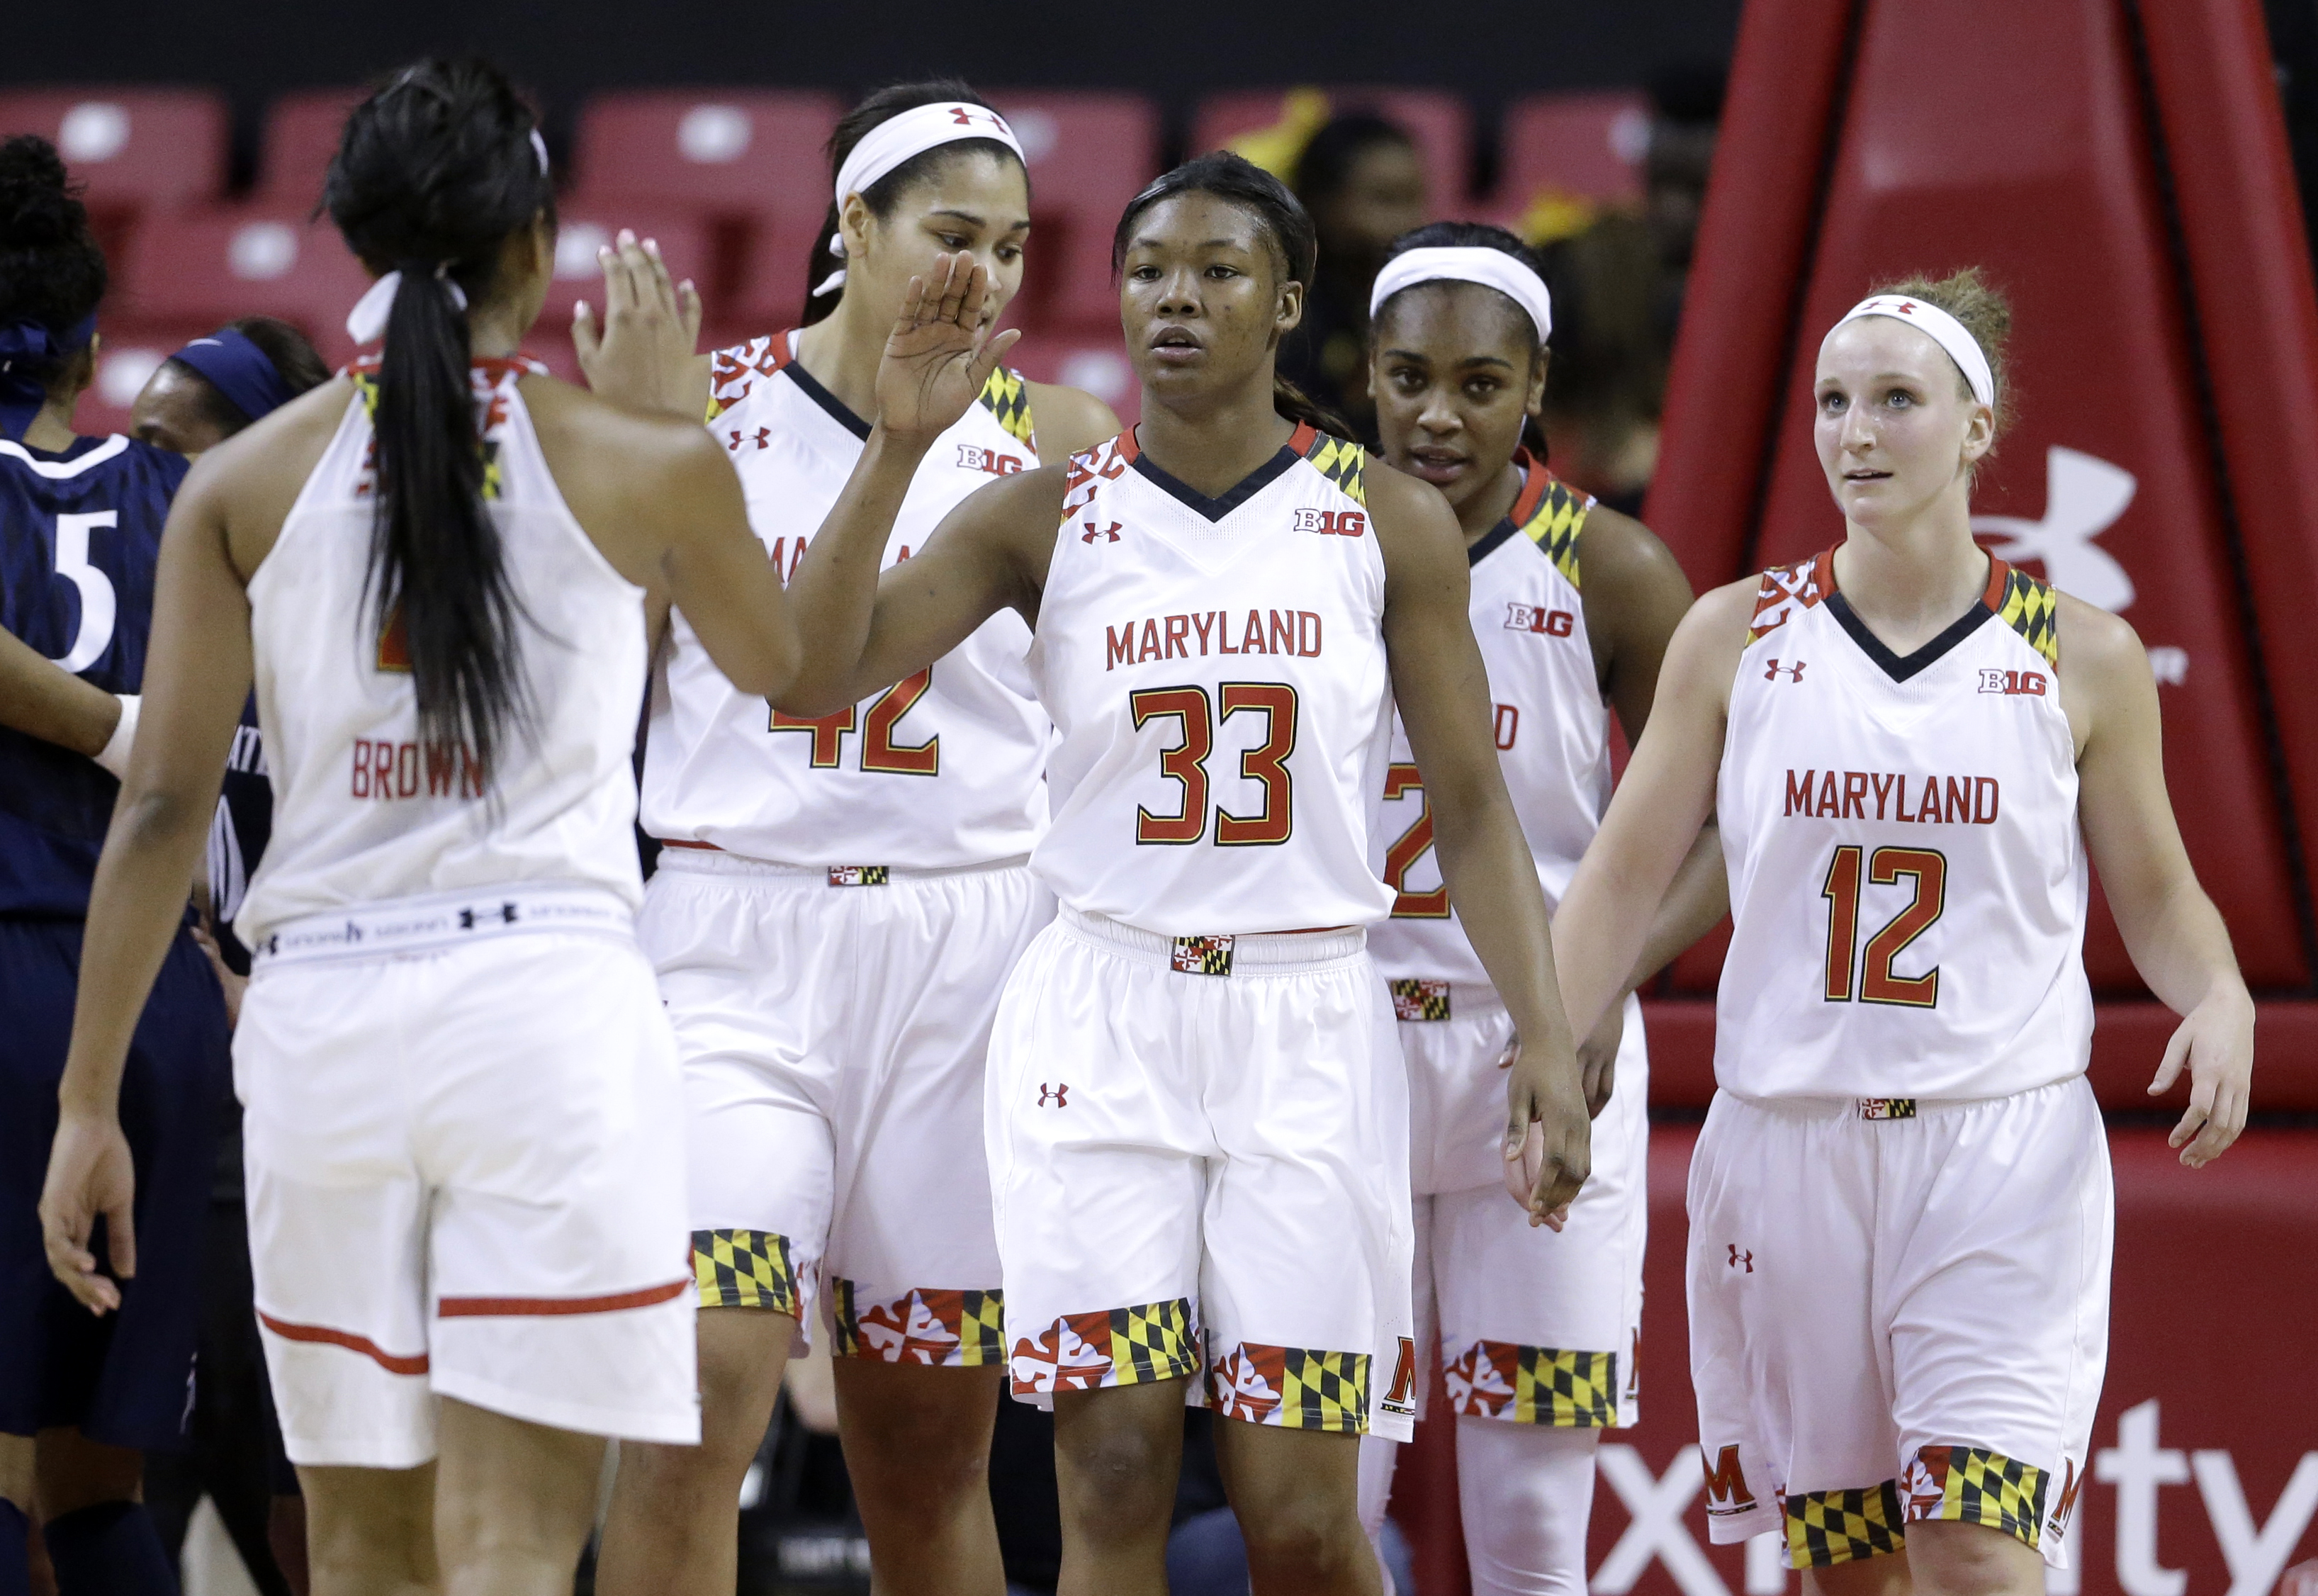 Maryland forward A'Lexus Harrison (33) high-fives teammate Lexie Brown in the first half of an NCAA college basketball game against Penn State, Monday, Feb. 23, 2015, in College Park, Md. (AP Photo/Patrick Semansky)